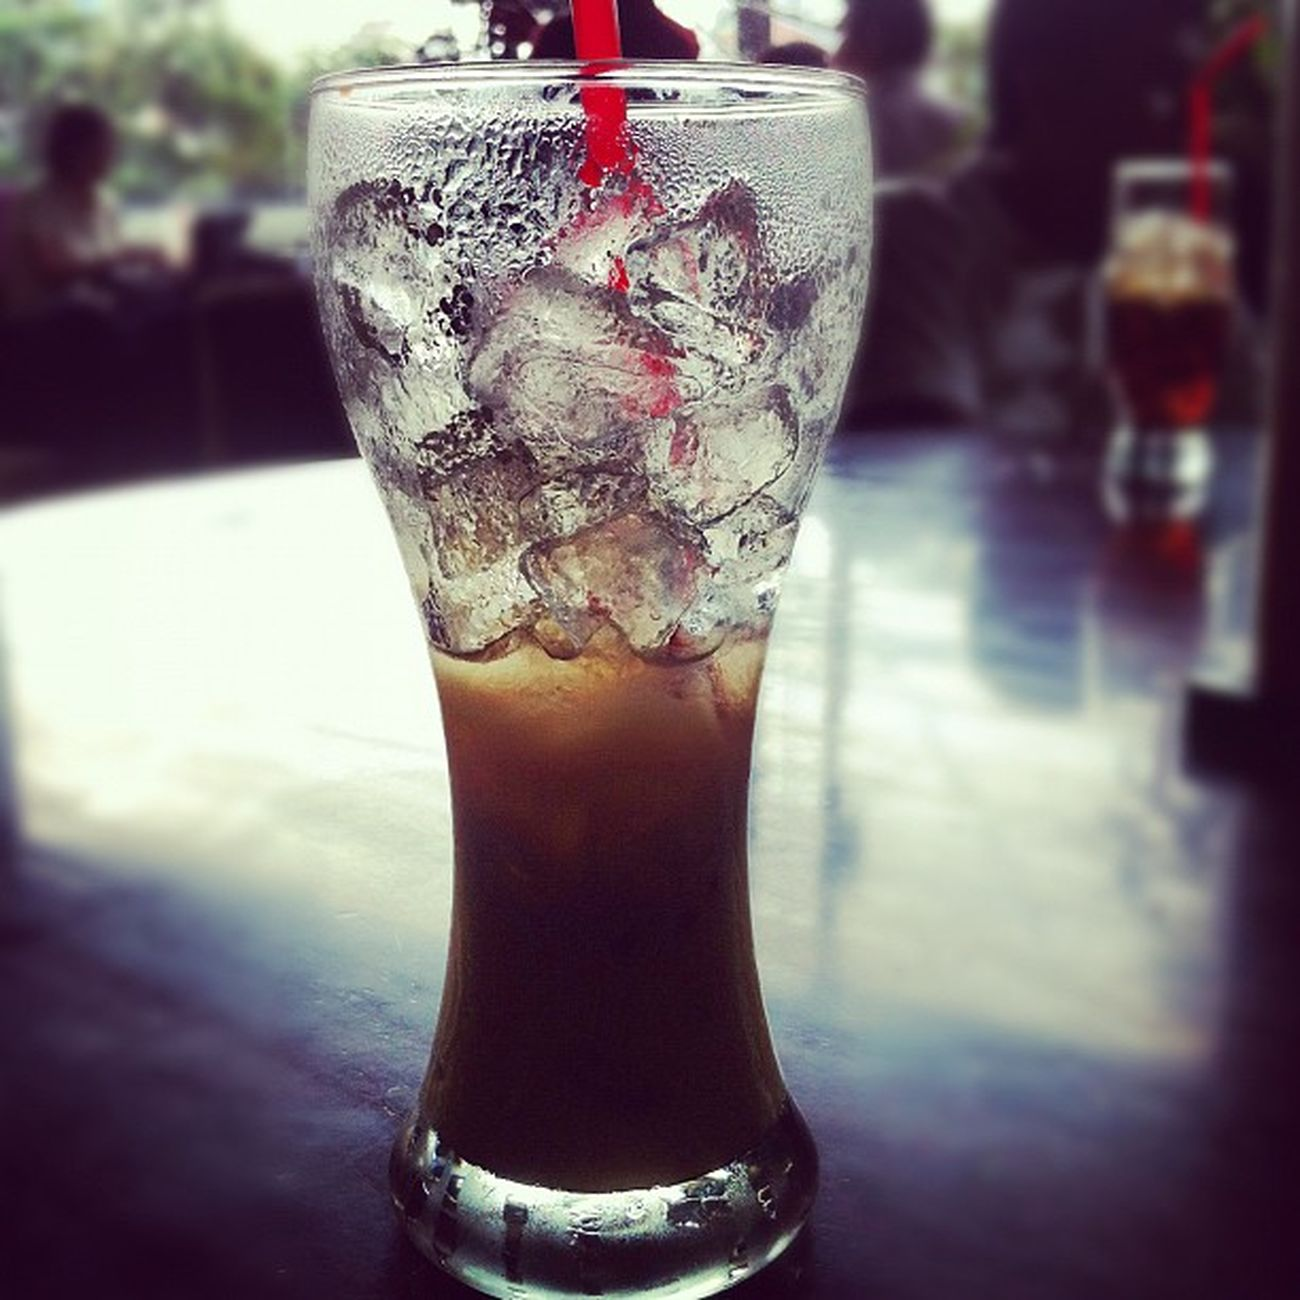 Iced coffee with condensed milk in #hociminh #vietnam Vietnam Hociminh